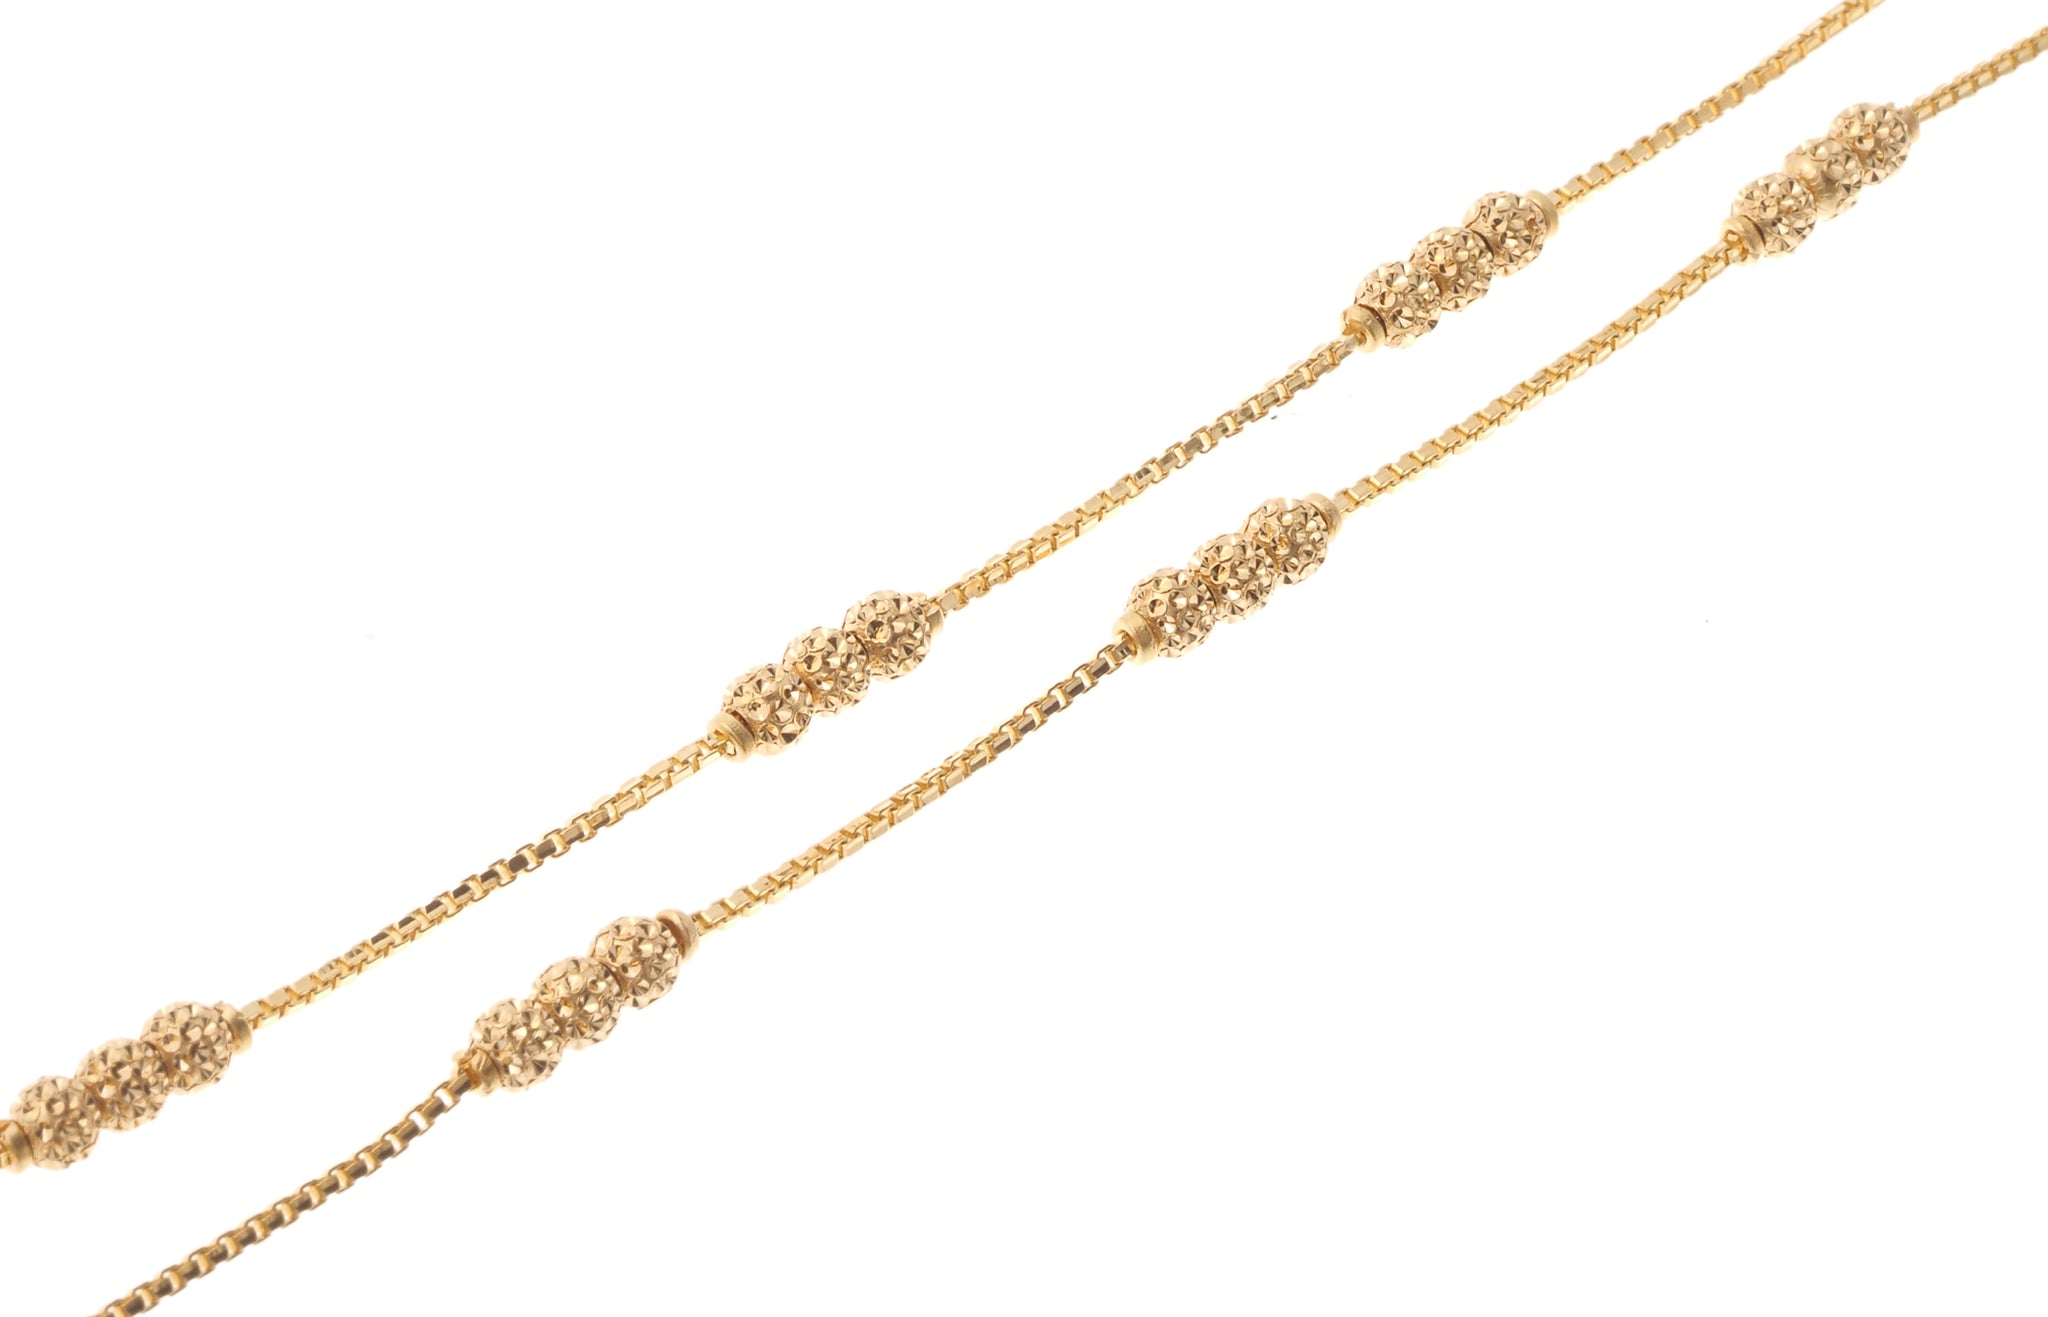 22ct Gold Box Chain with diamond cut gold beads and hook clasp C-7126